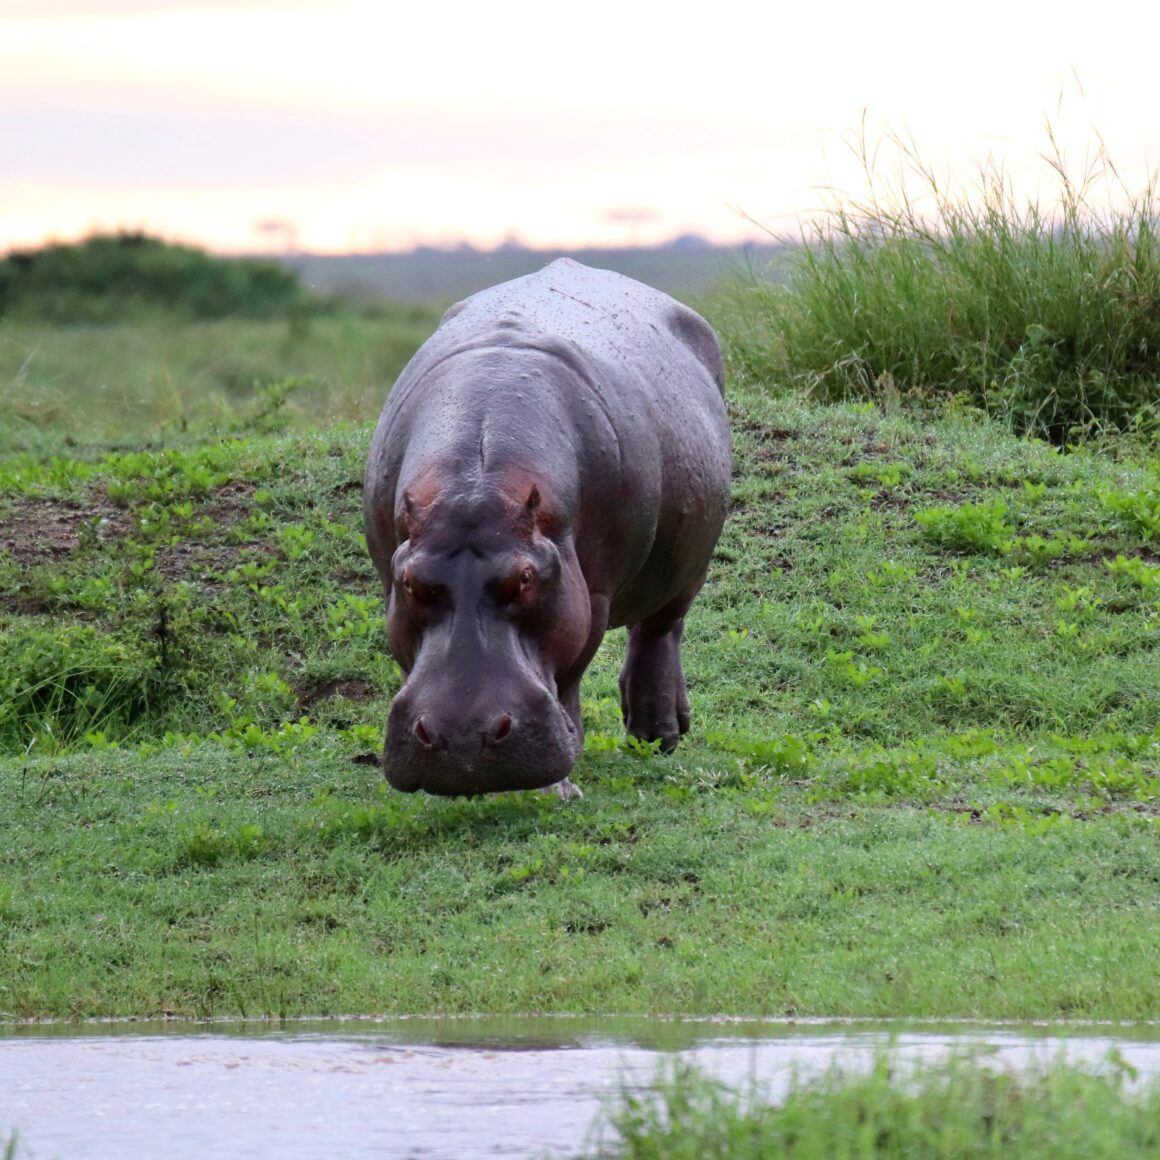 Hippo in the Serengeti National Park